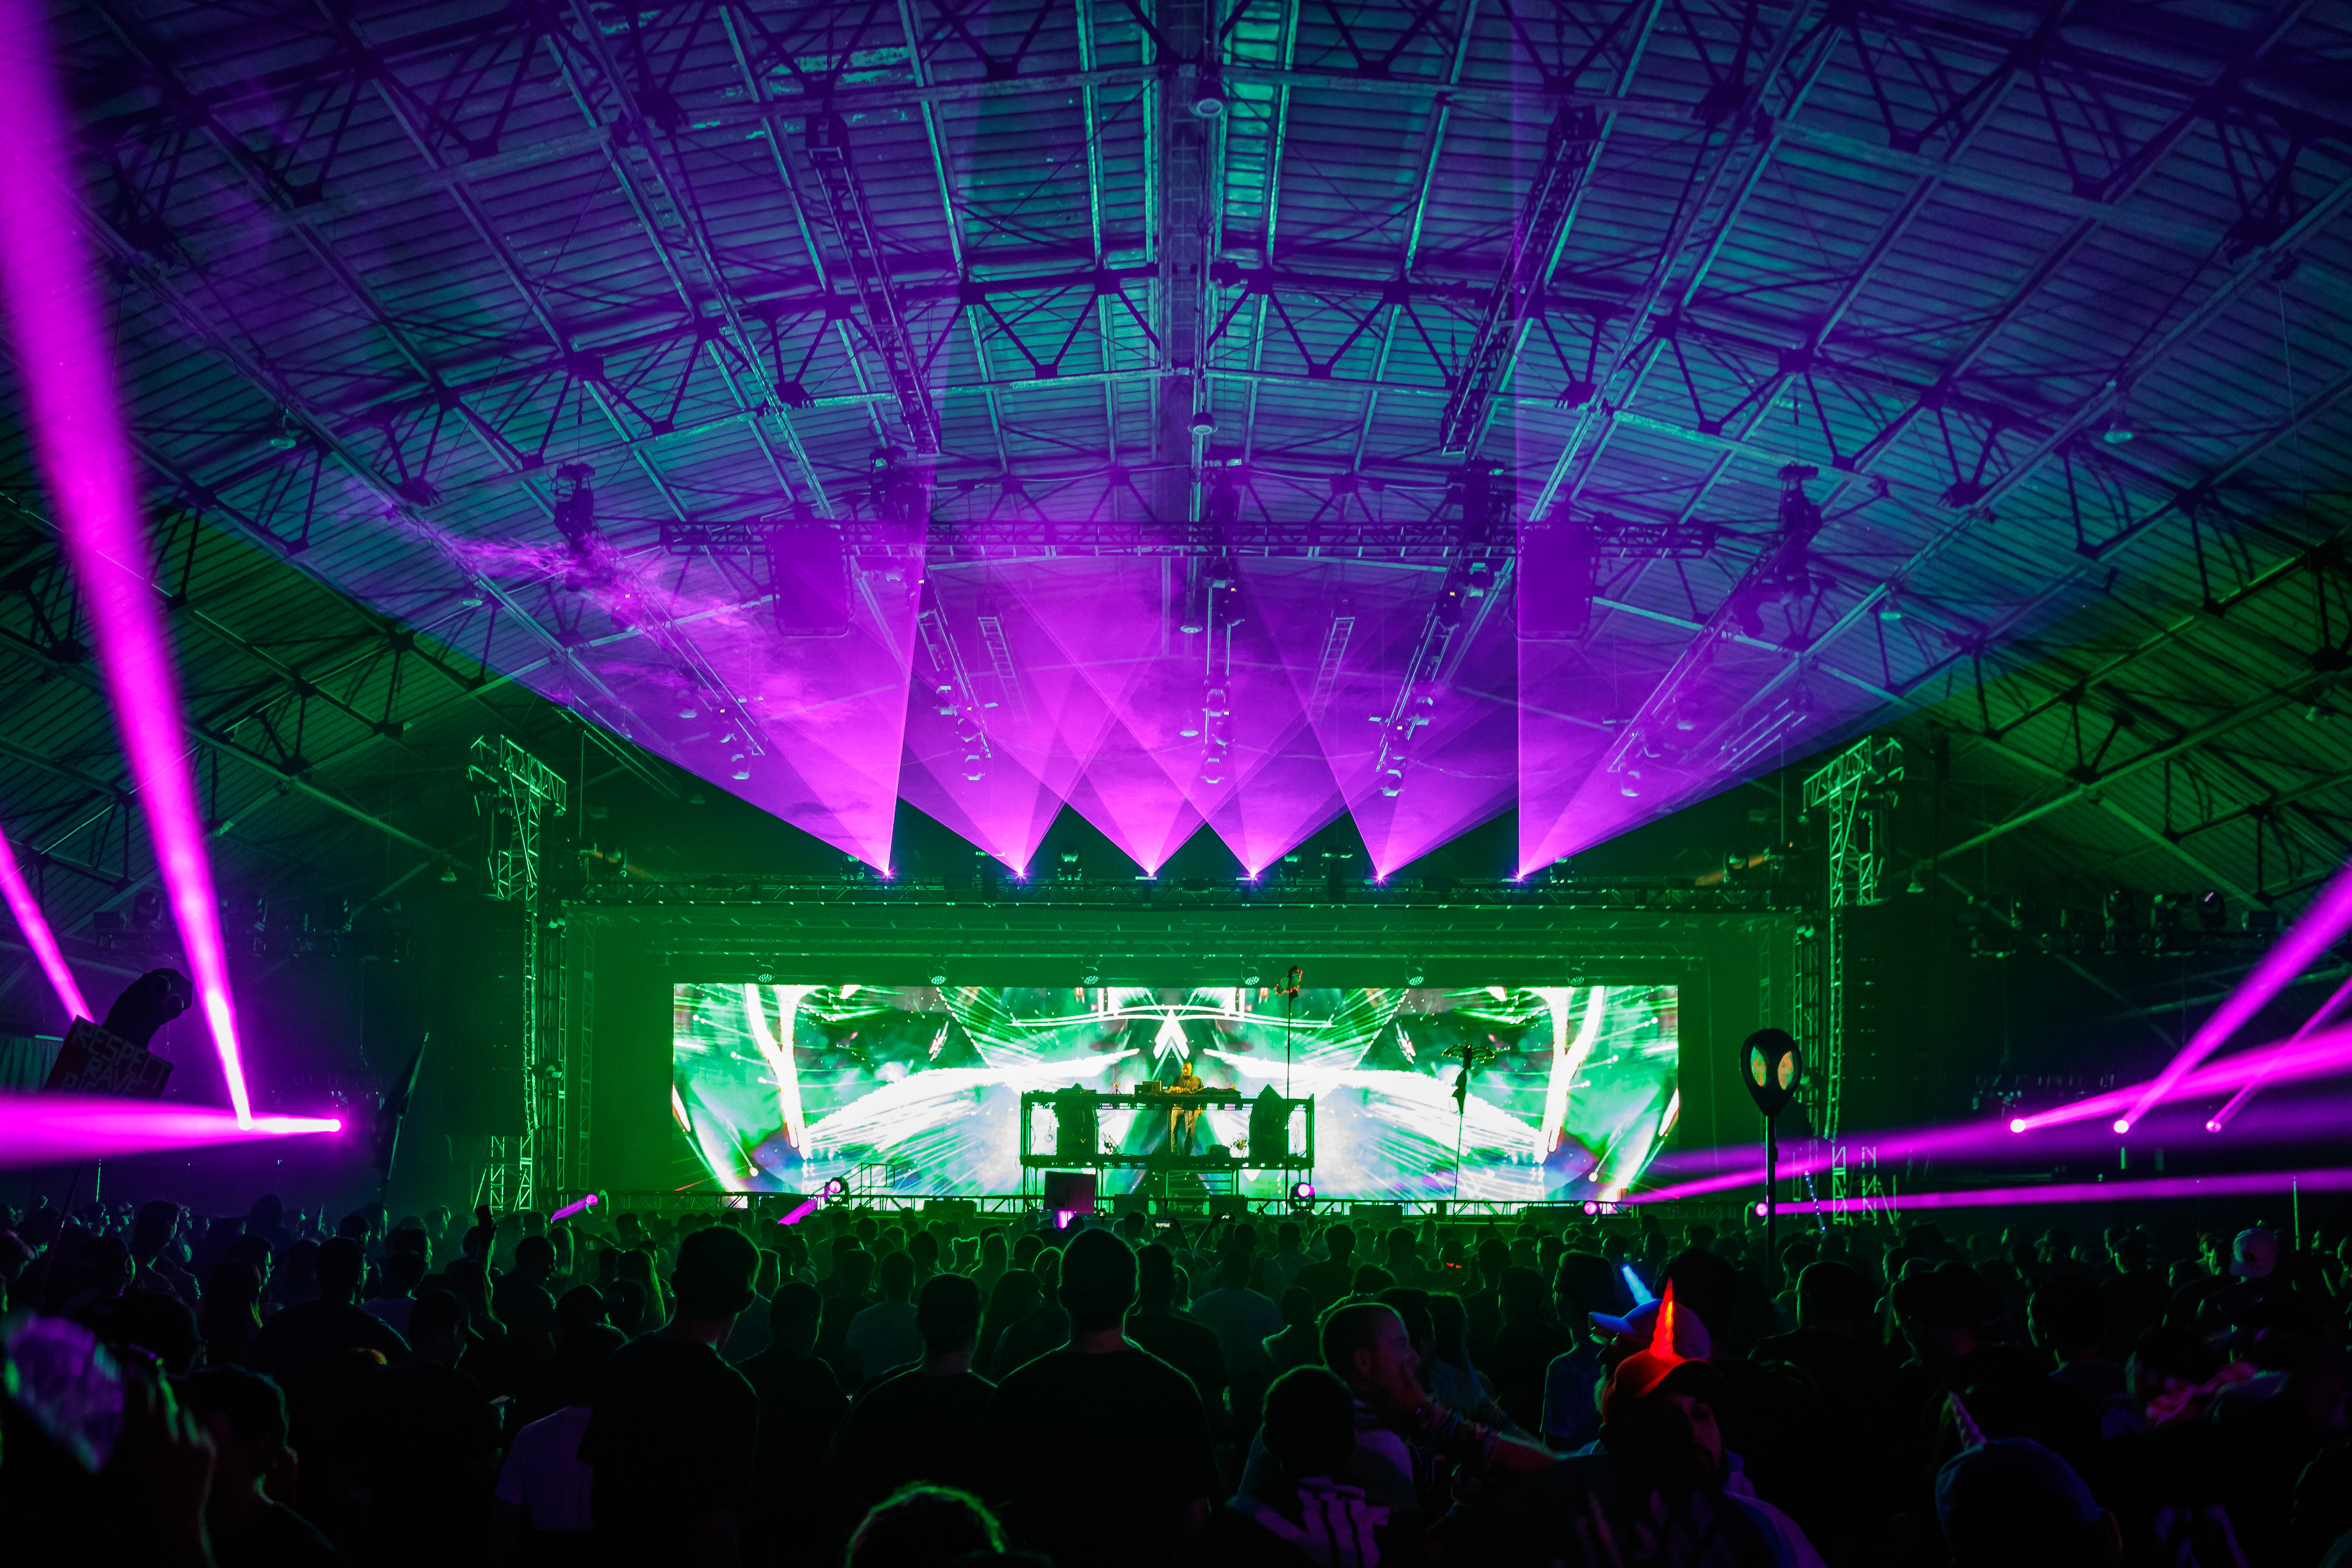 Purple lasers and green lights